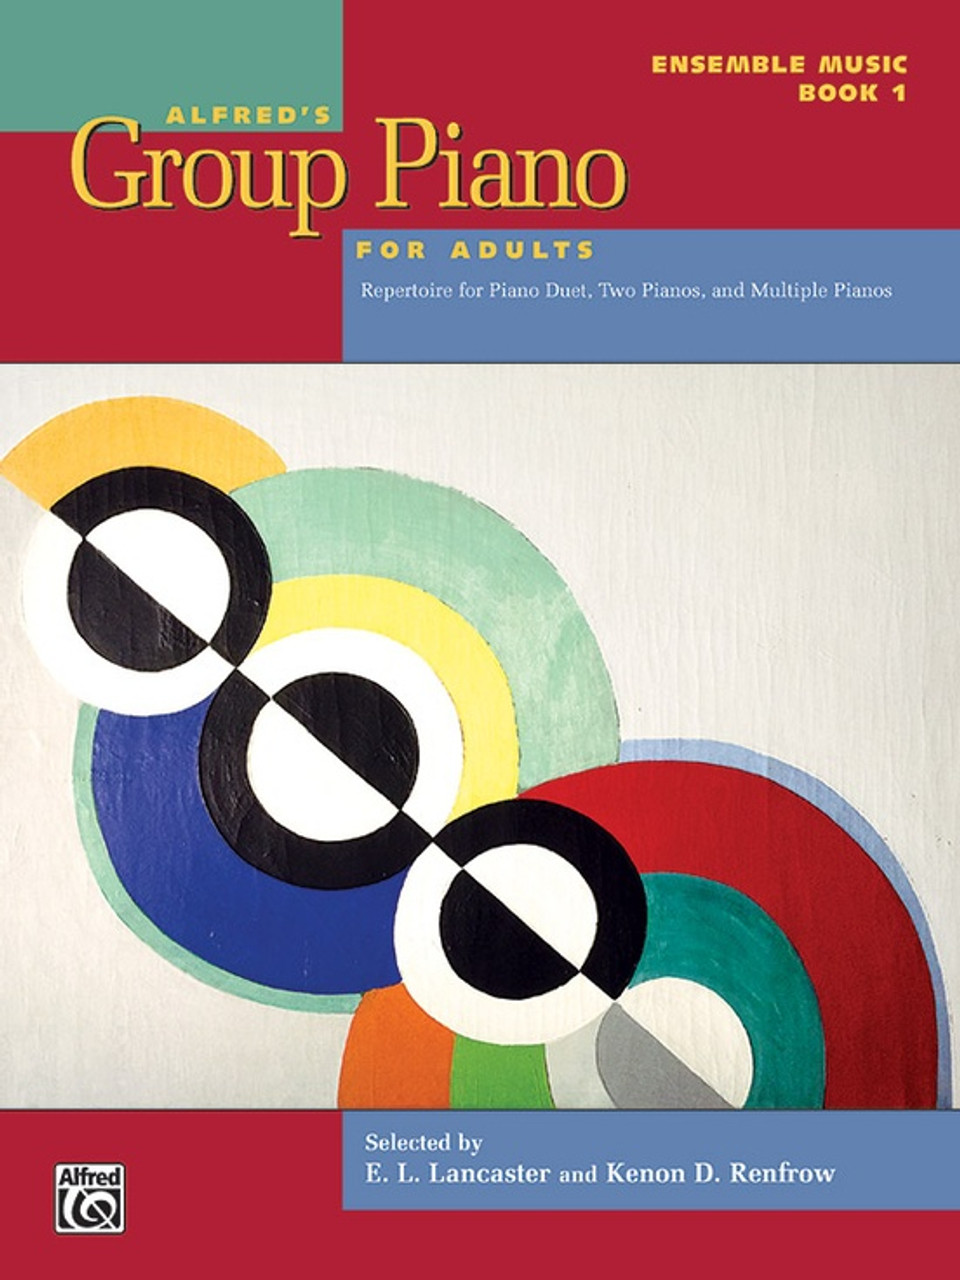 Alfred's Group Piano for Adults Vol  1[Alf:47849]